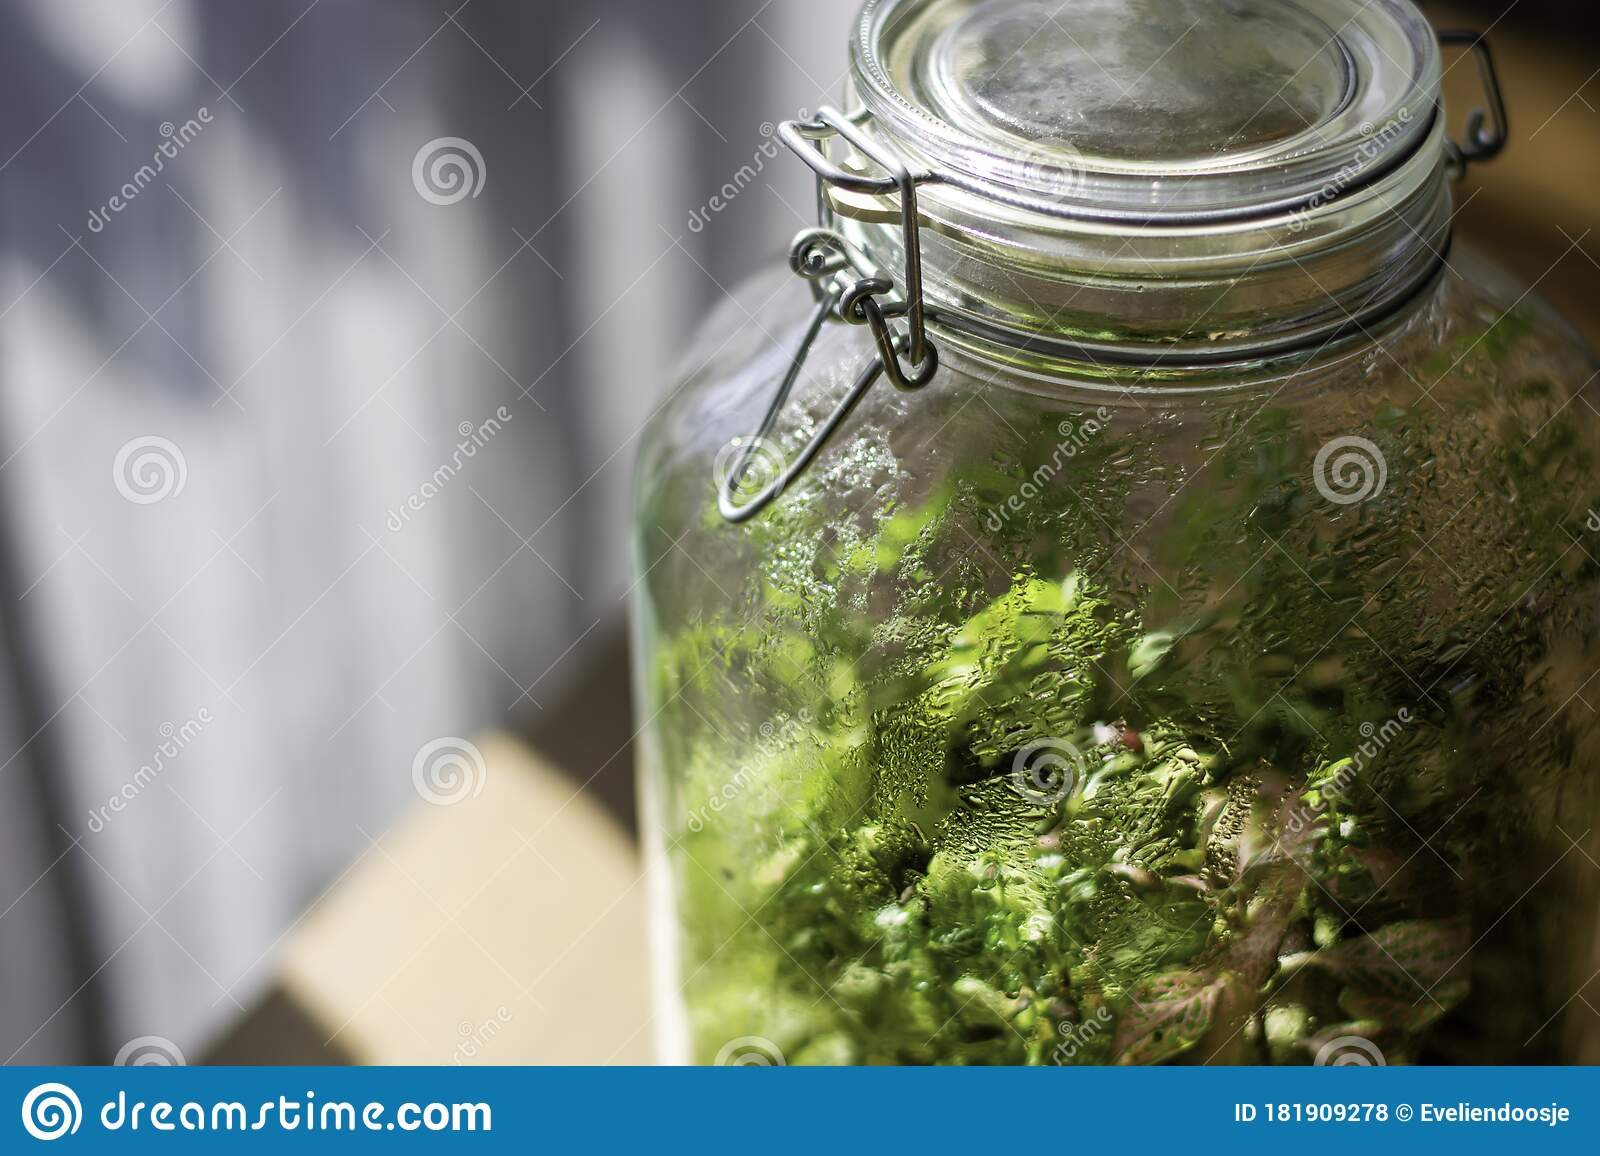 Plants In A Closed Glass Bottle Terrarium Jar Small Ecosystem Stock Photo Image Of Drops Growth 181909278